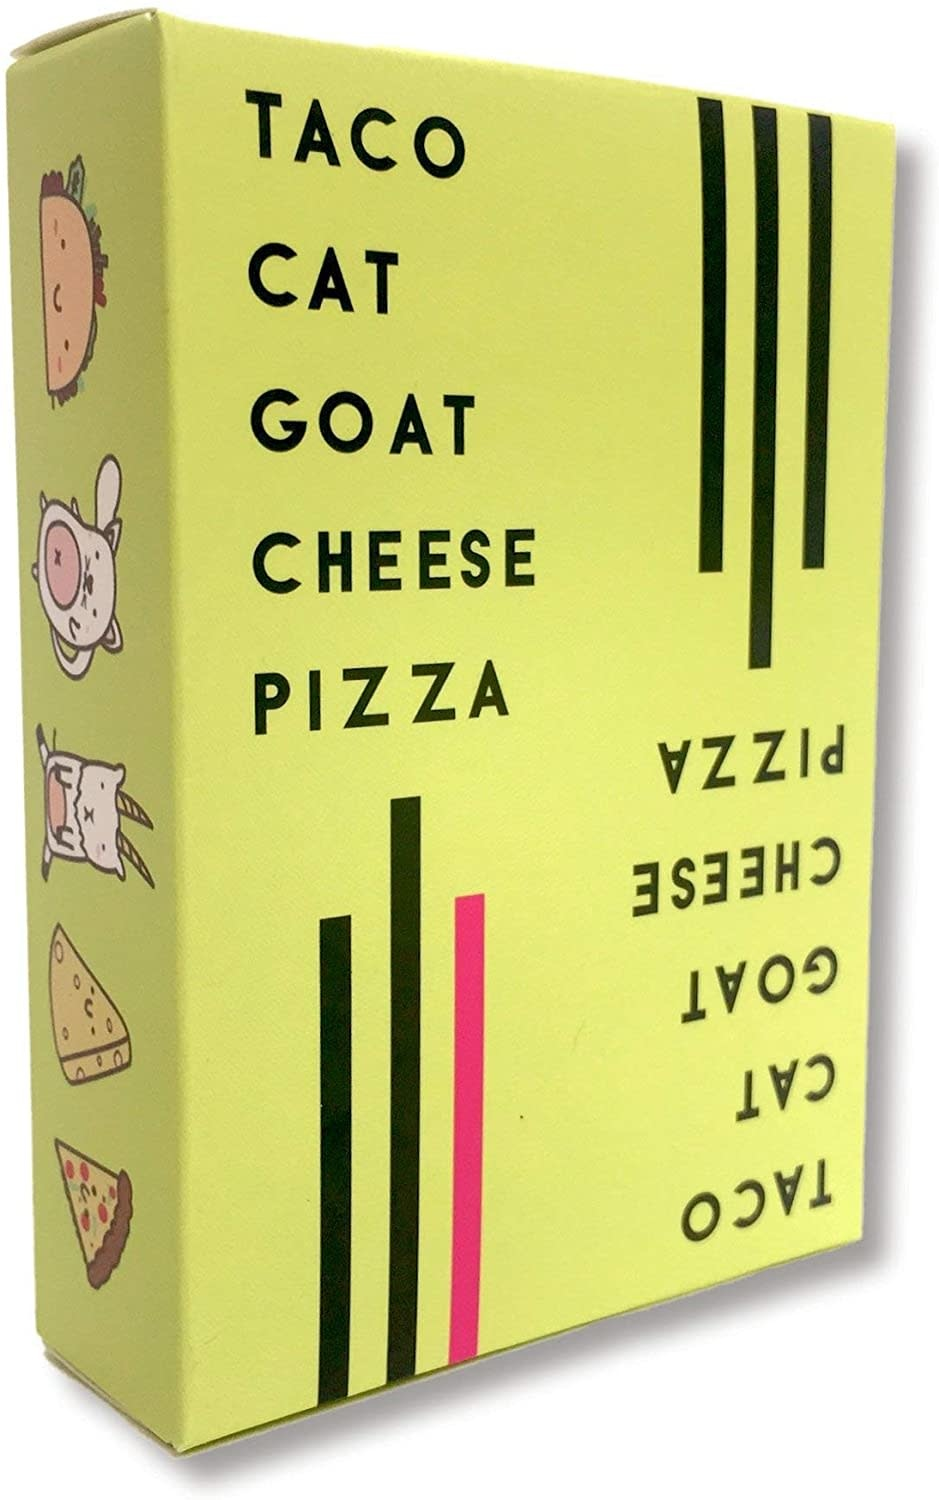 Taco Cat Goat Cheese Pizza Card Game-4